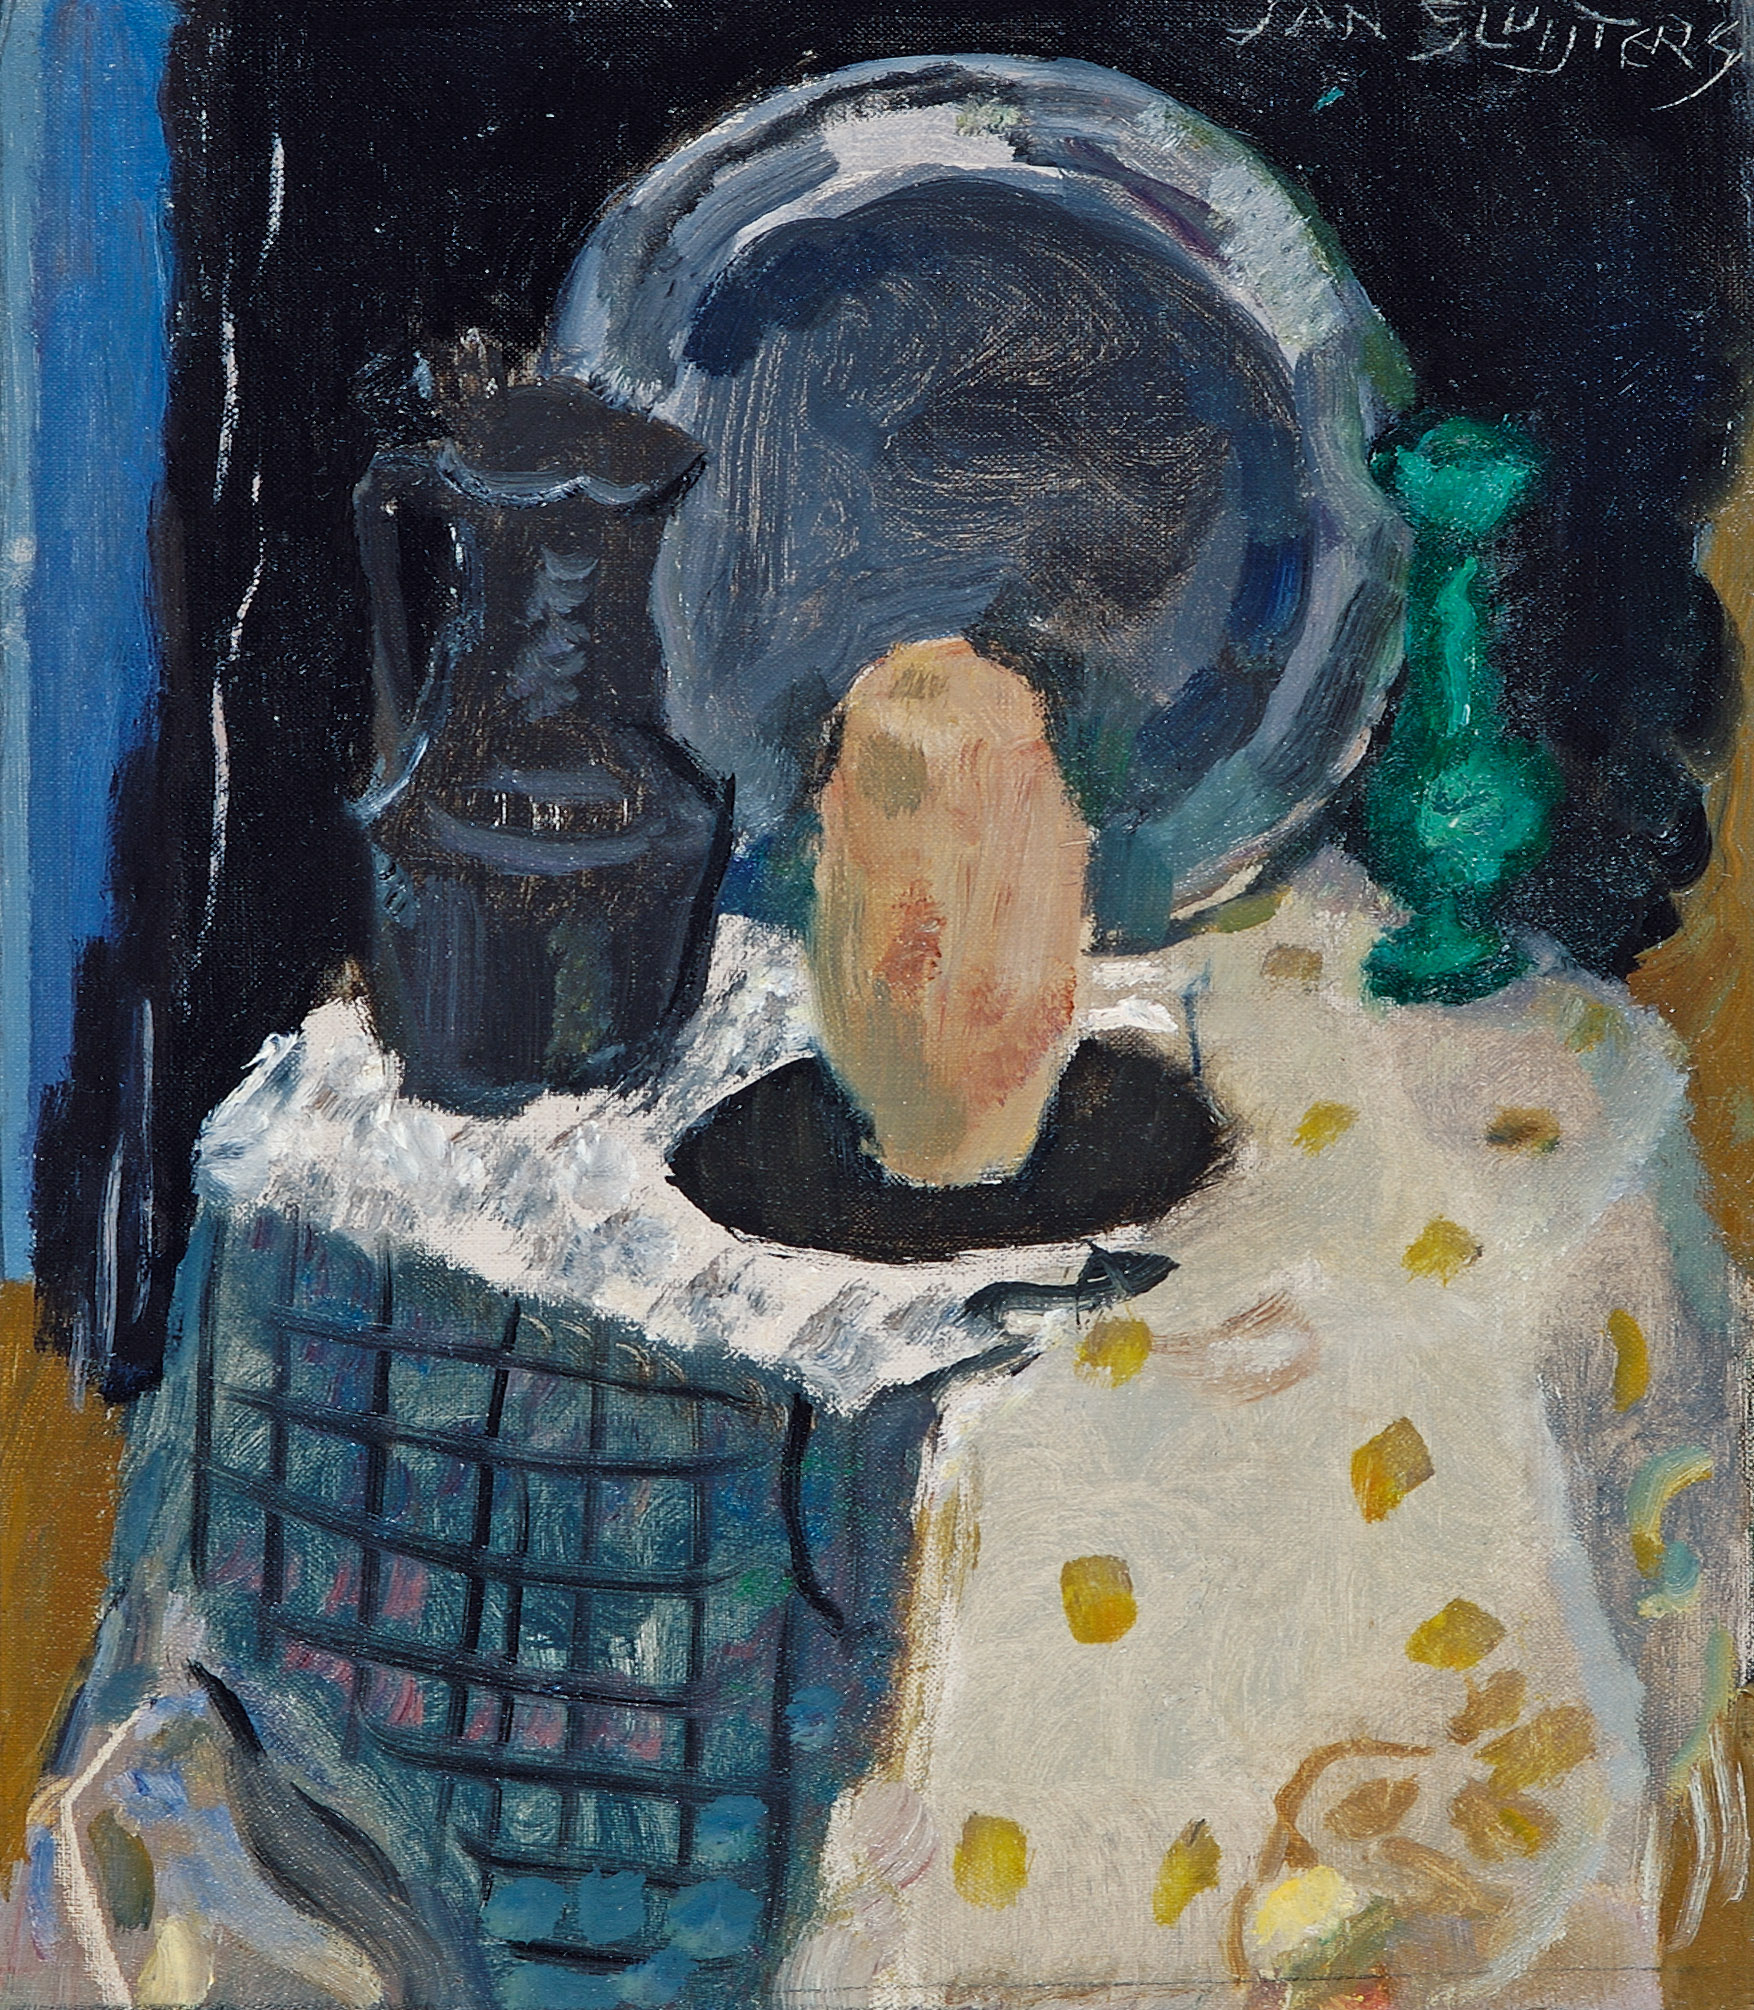 Stilleven Jan Sluijters (1881-1957) - Kunsthandel Studio 2000